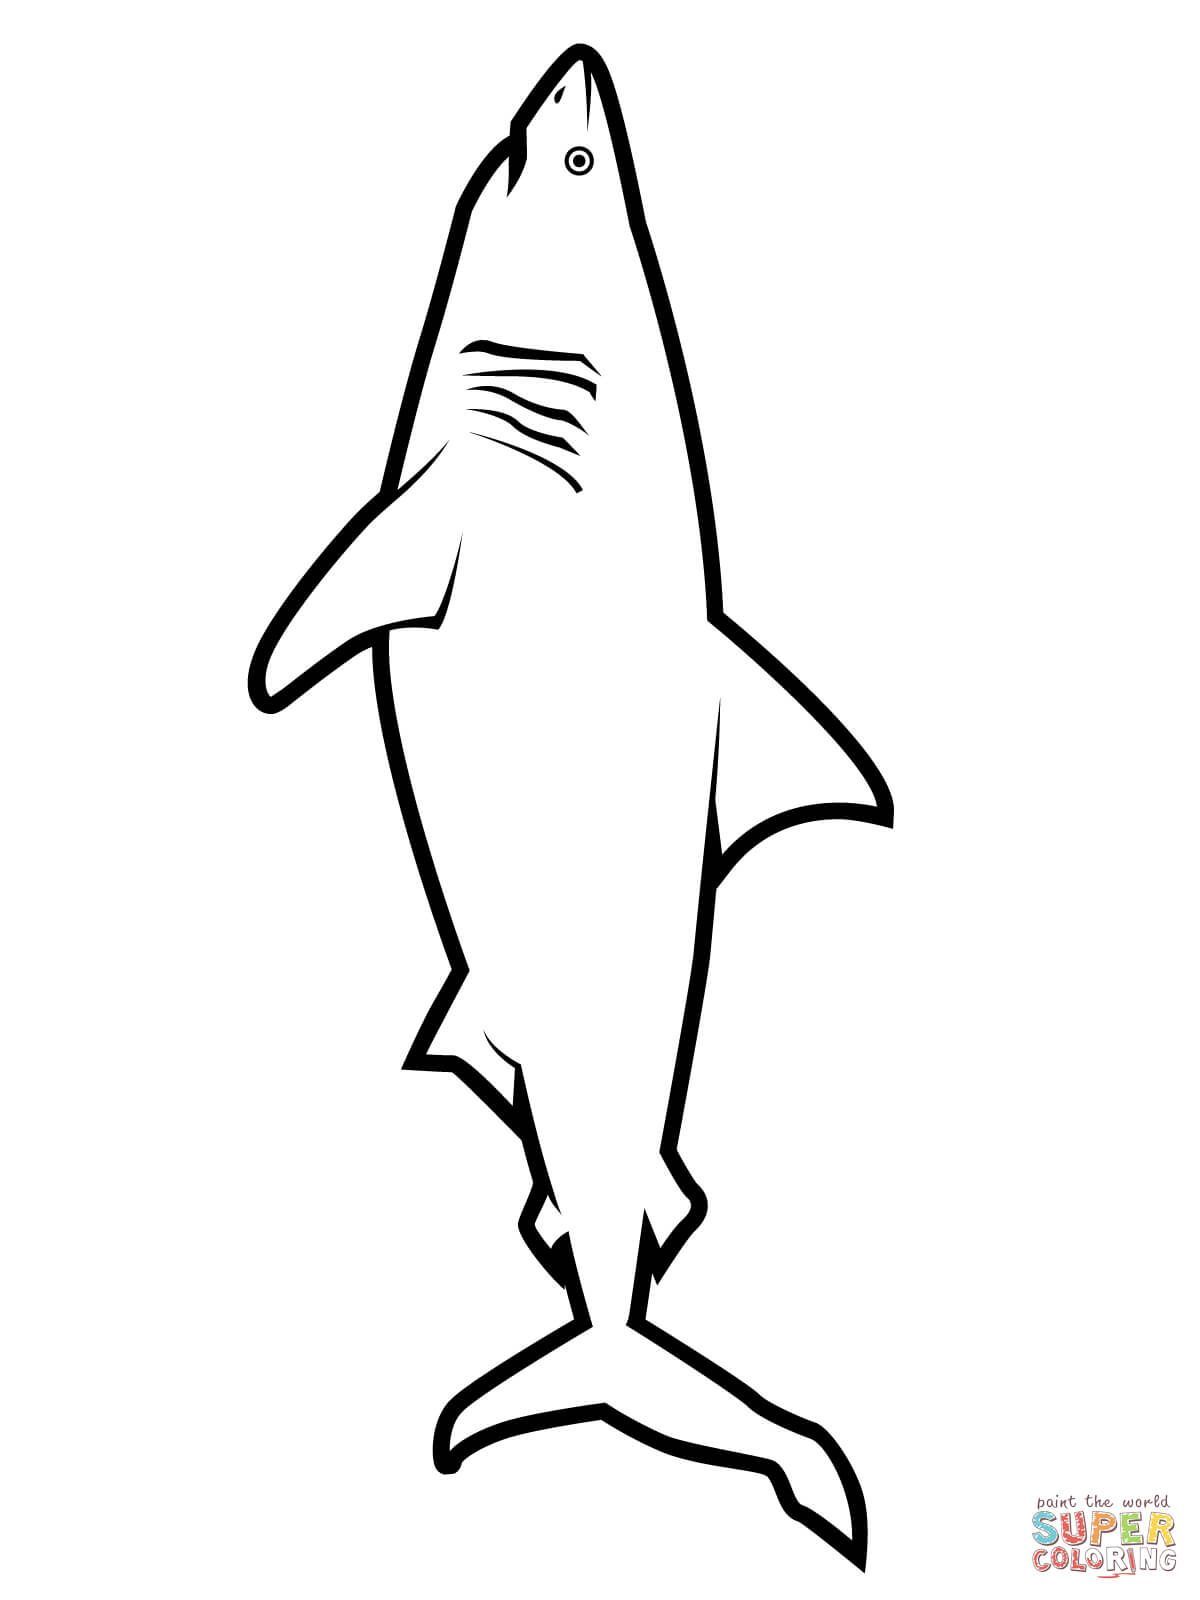 Realistic Great White Shark Coloring Page   Free Printable Coloring - Free Printable Great White Shark Coloring Pages